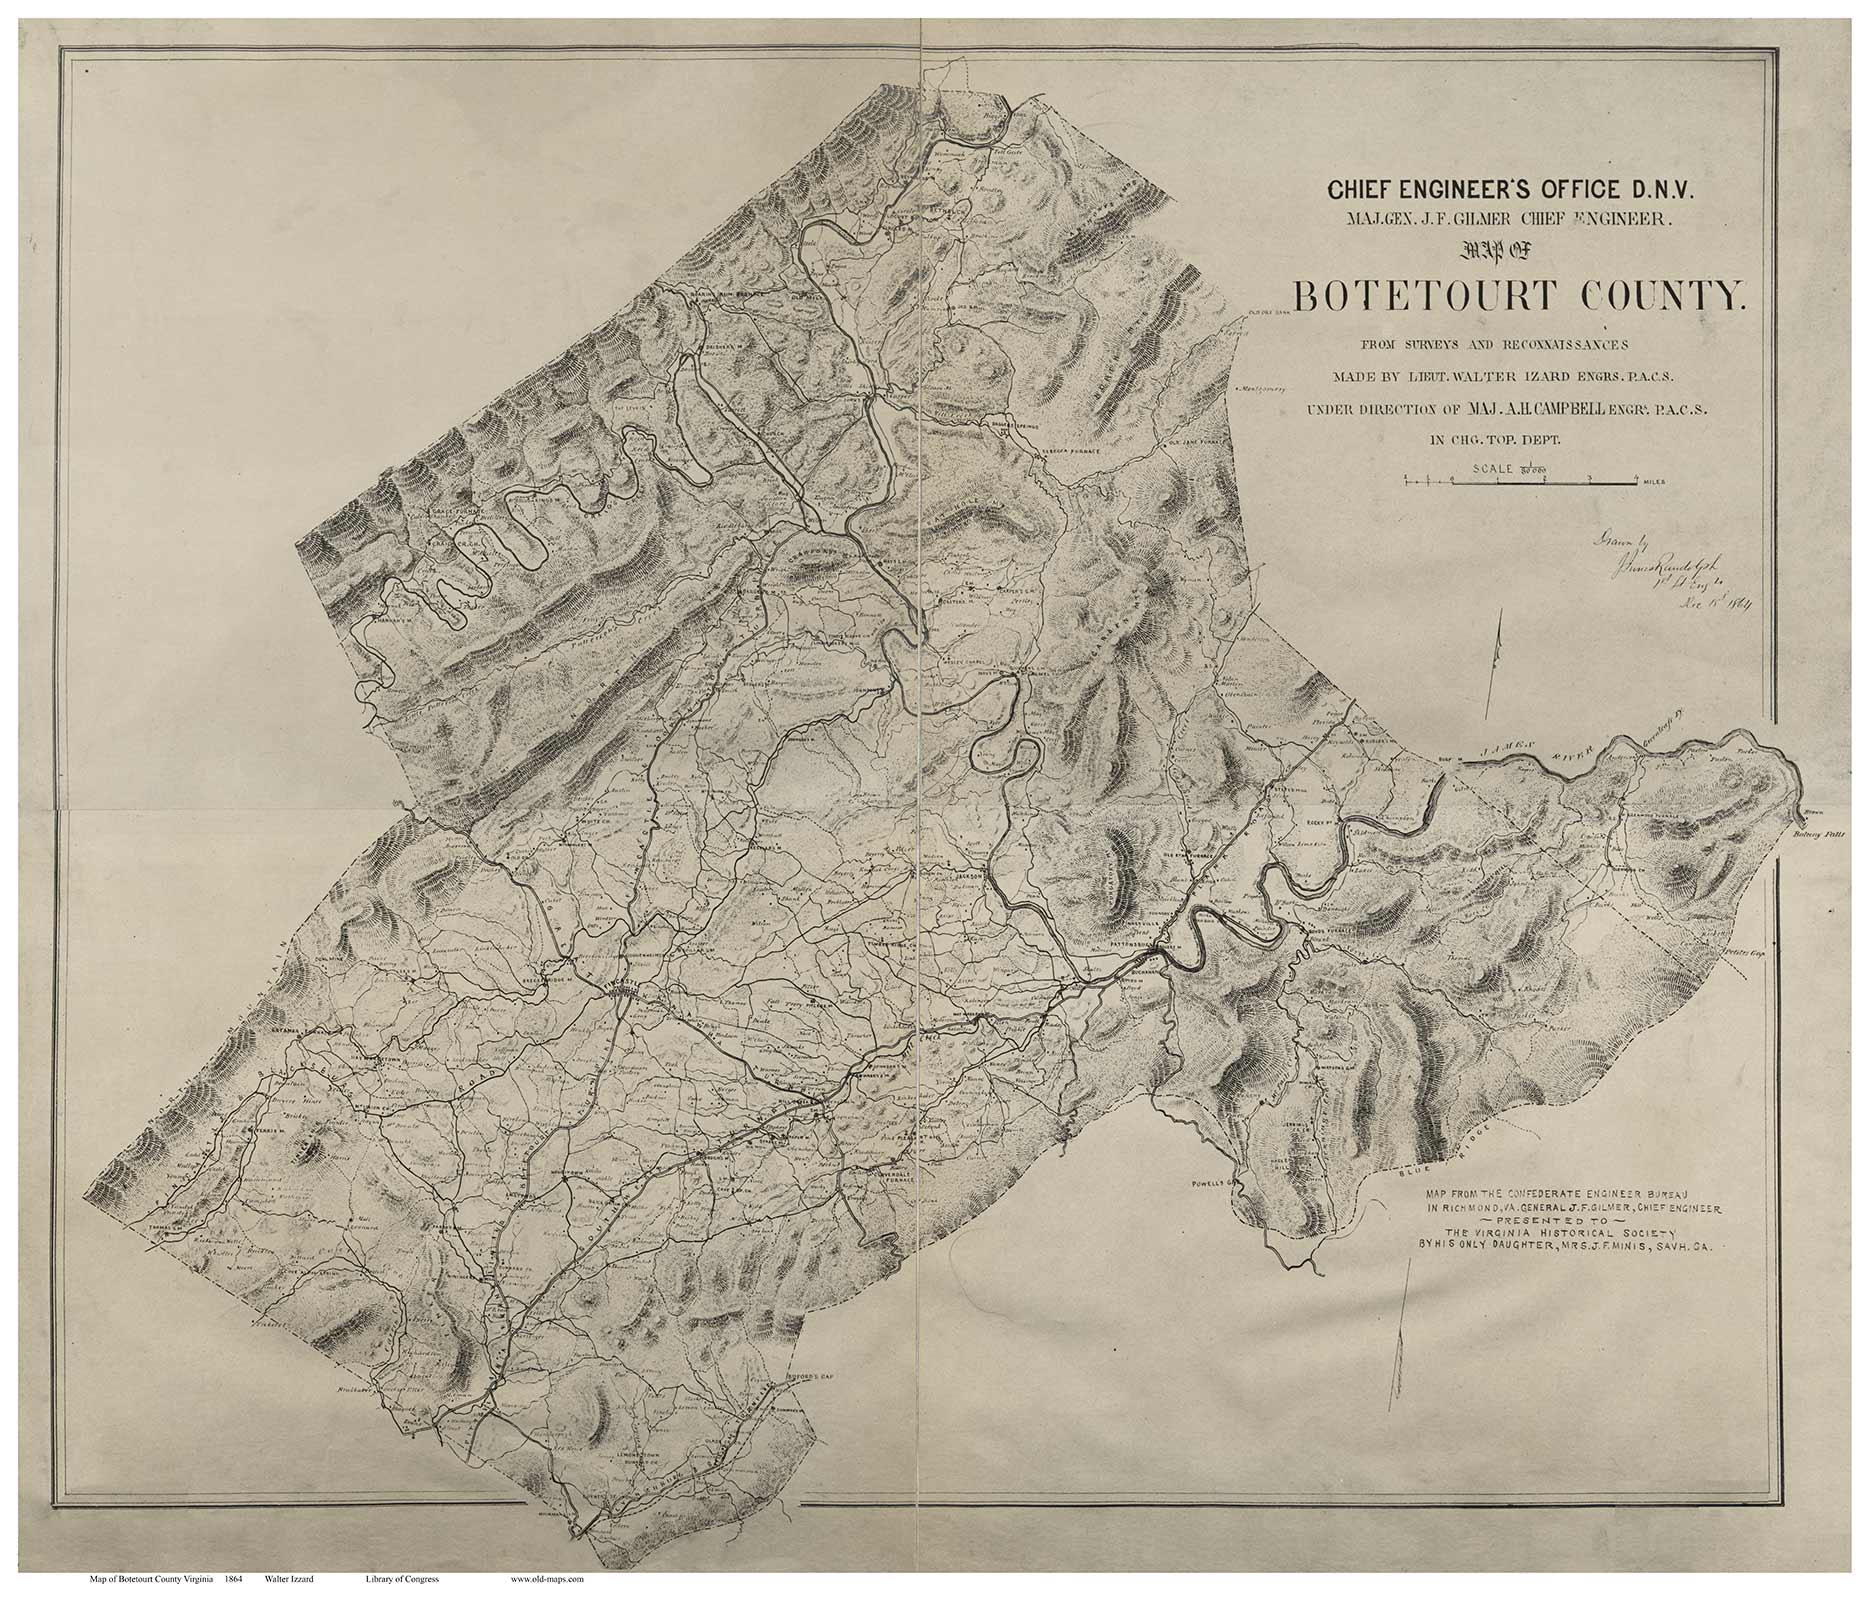 botetourt county Search for botetourt county va gis maps and property maps property maps show property and parcel boundaries, municipal boundaries, and zoning boundaries, and gis maps show floodplains, air traffic patterns, and soil composition.